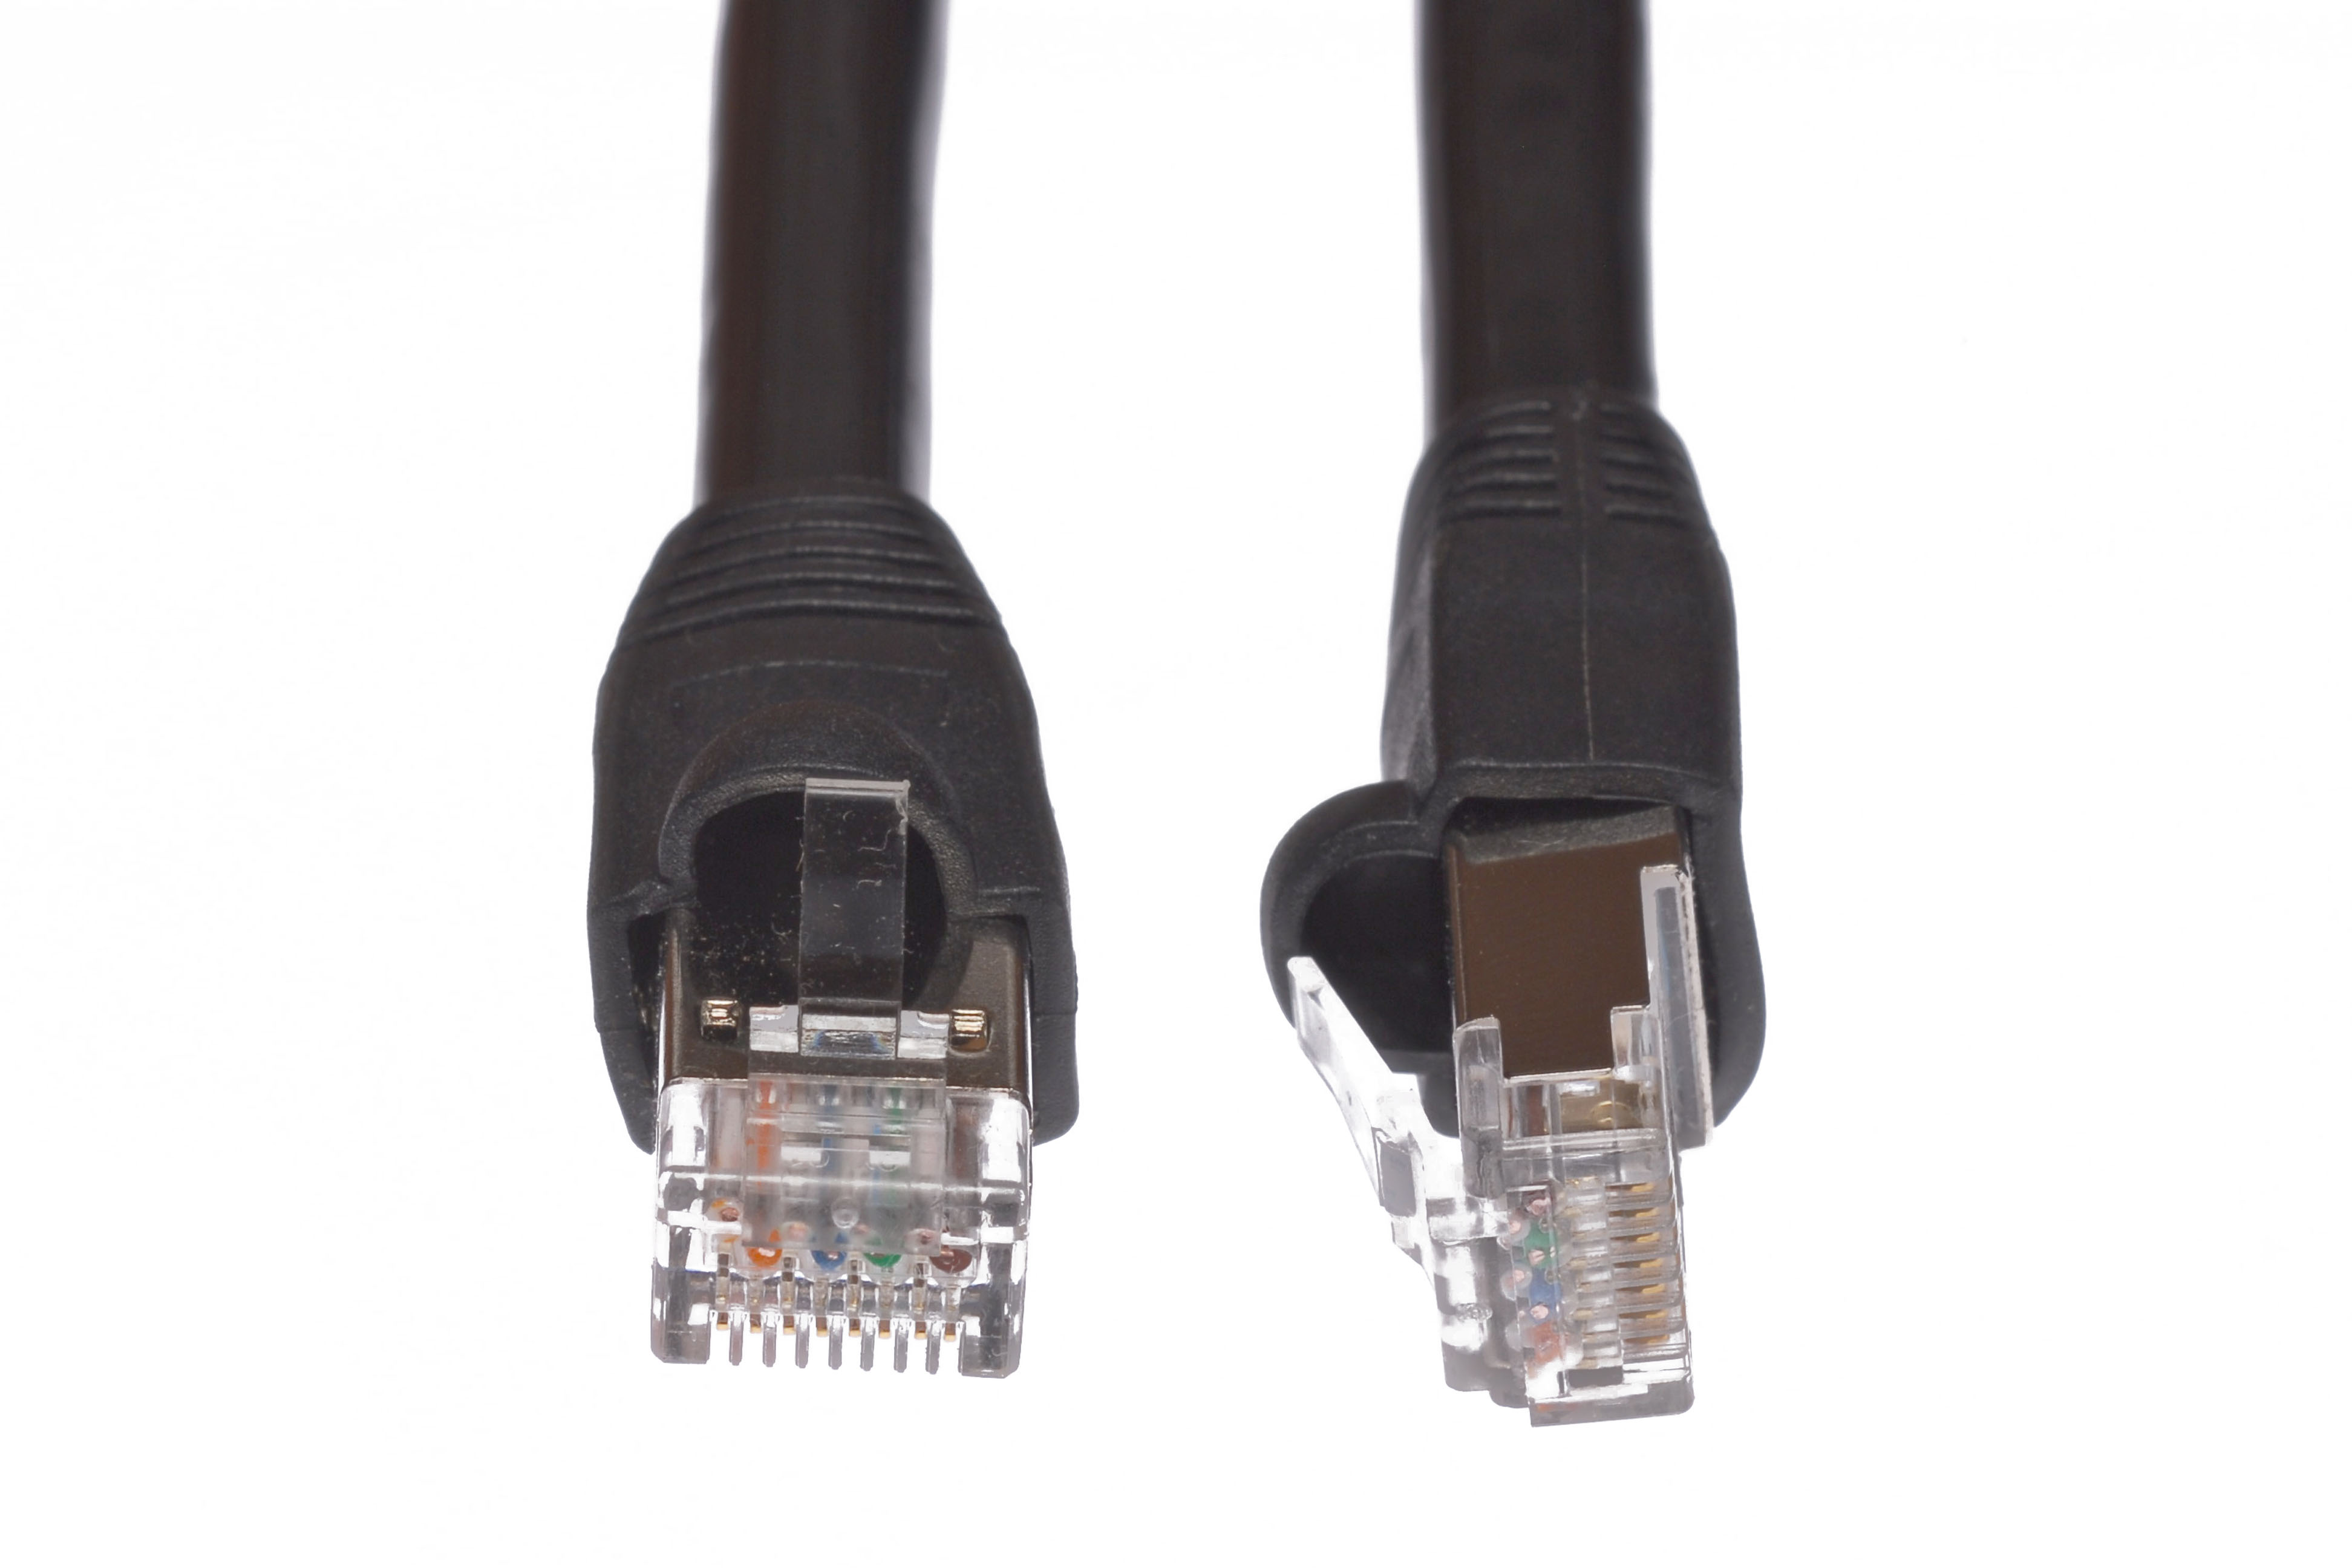 Category 6/6A Outdoor Cables- All Types